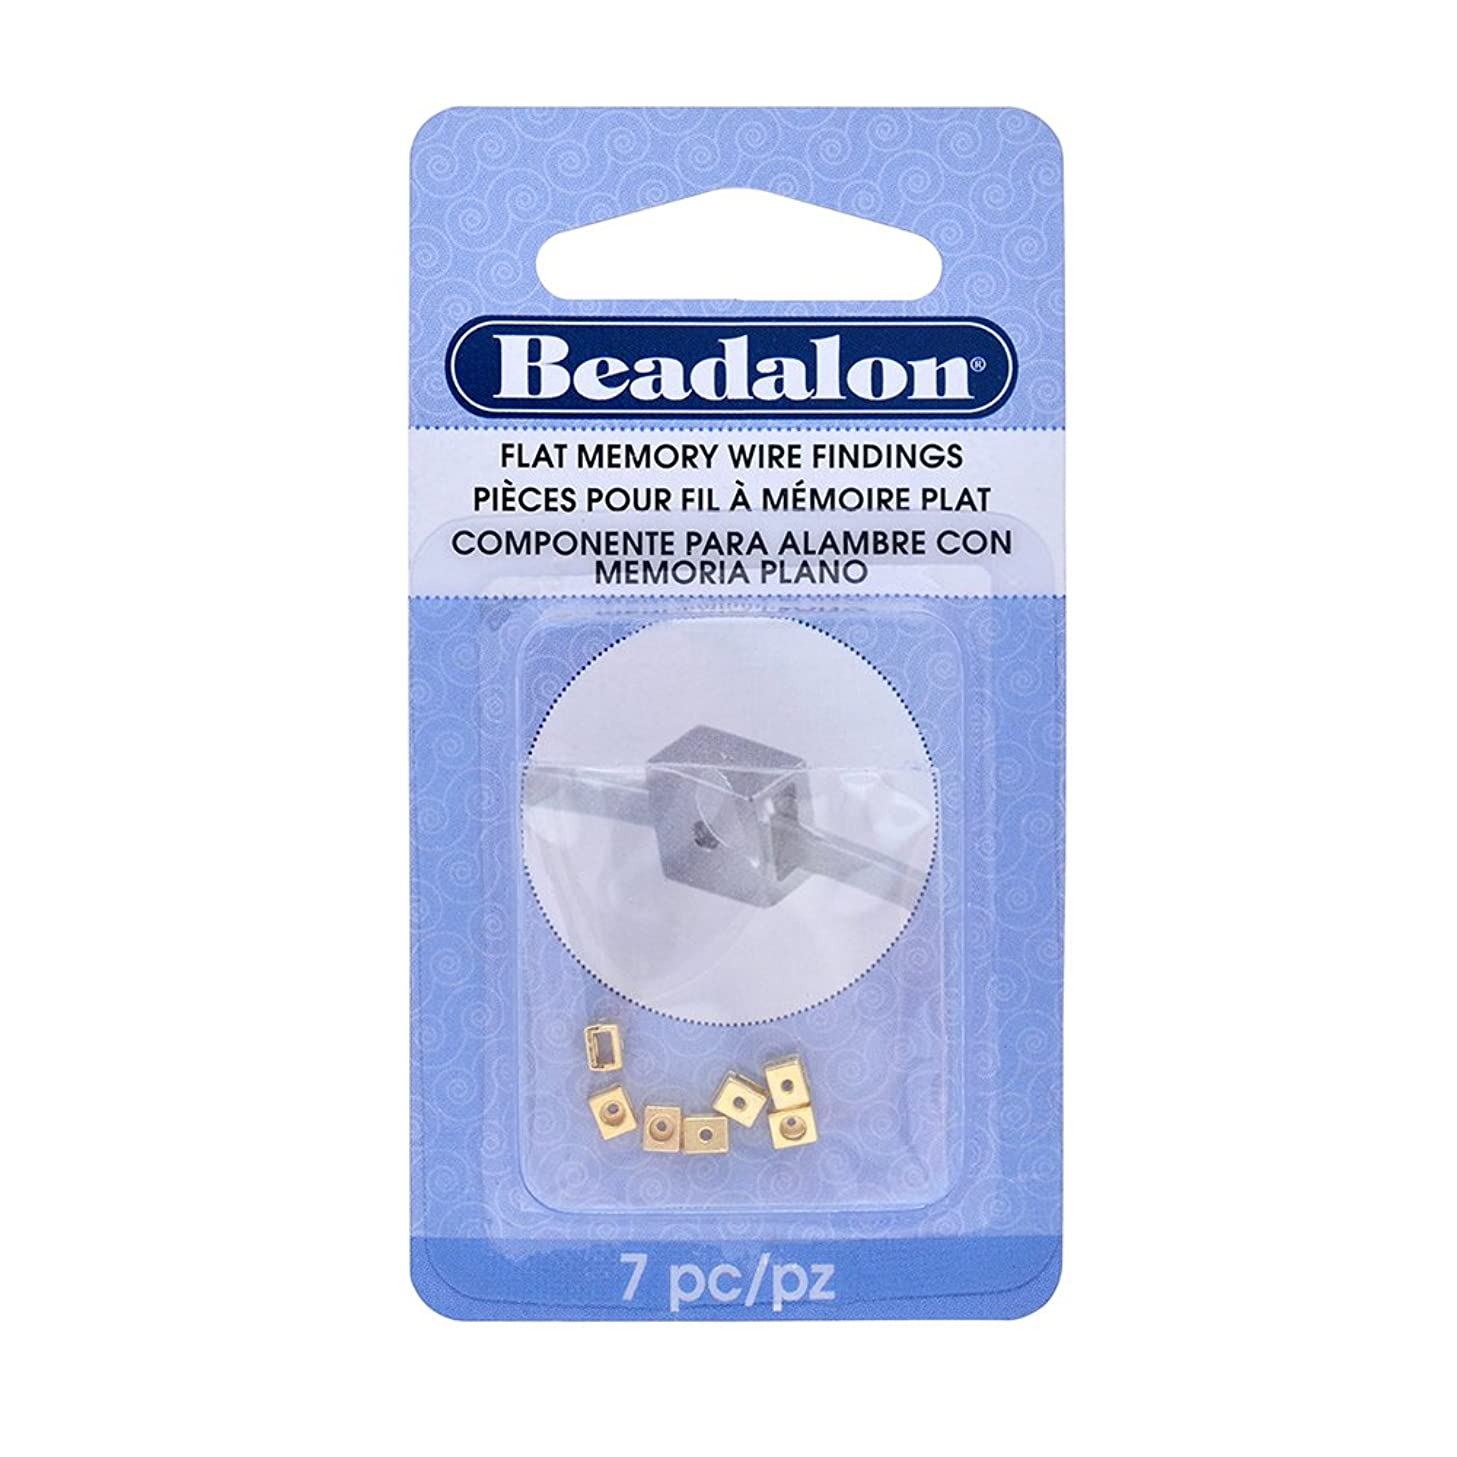 Beadalon 7-Piece Flat Memory Wire Finding with Head Pin Holder, 0.12 by 0.07 by 0.11-Inch, Gold Color